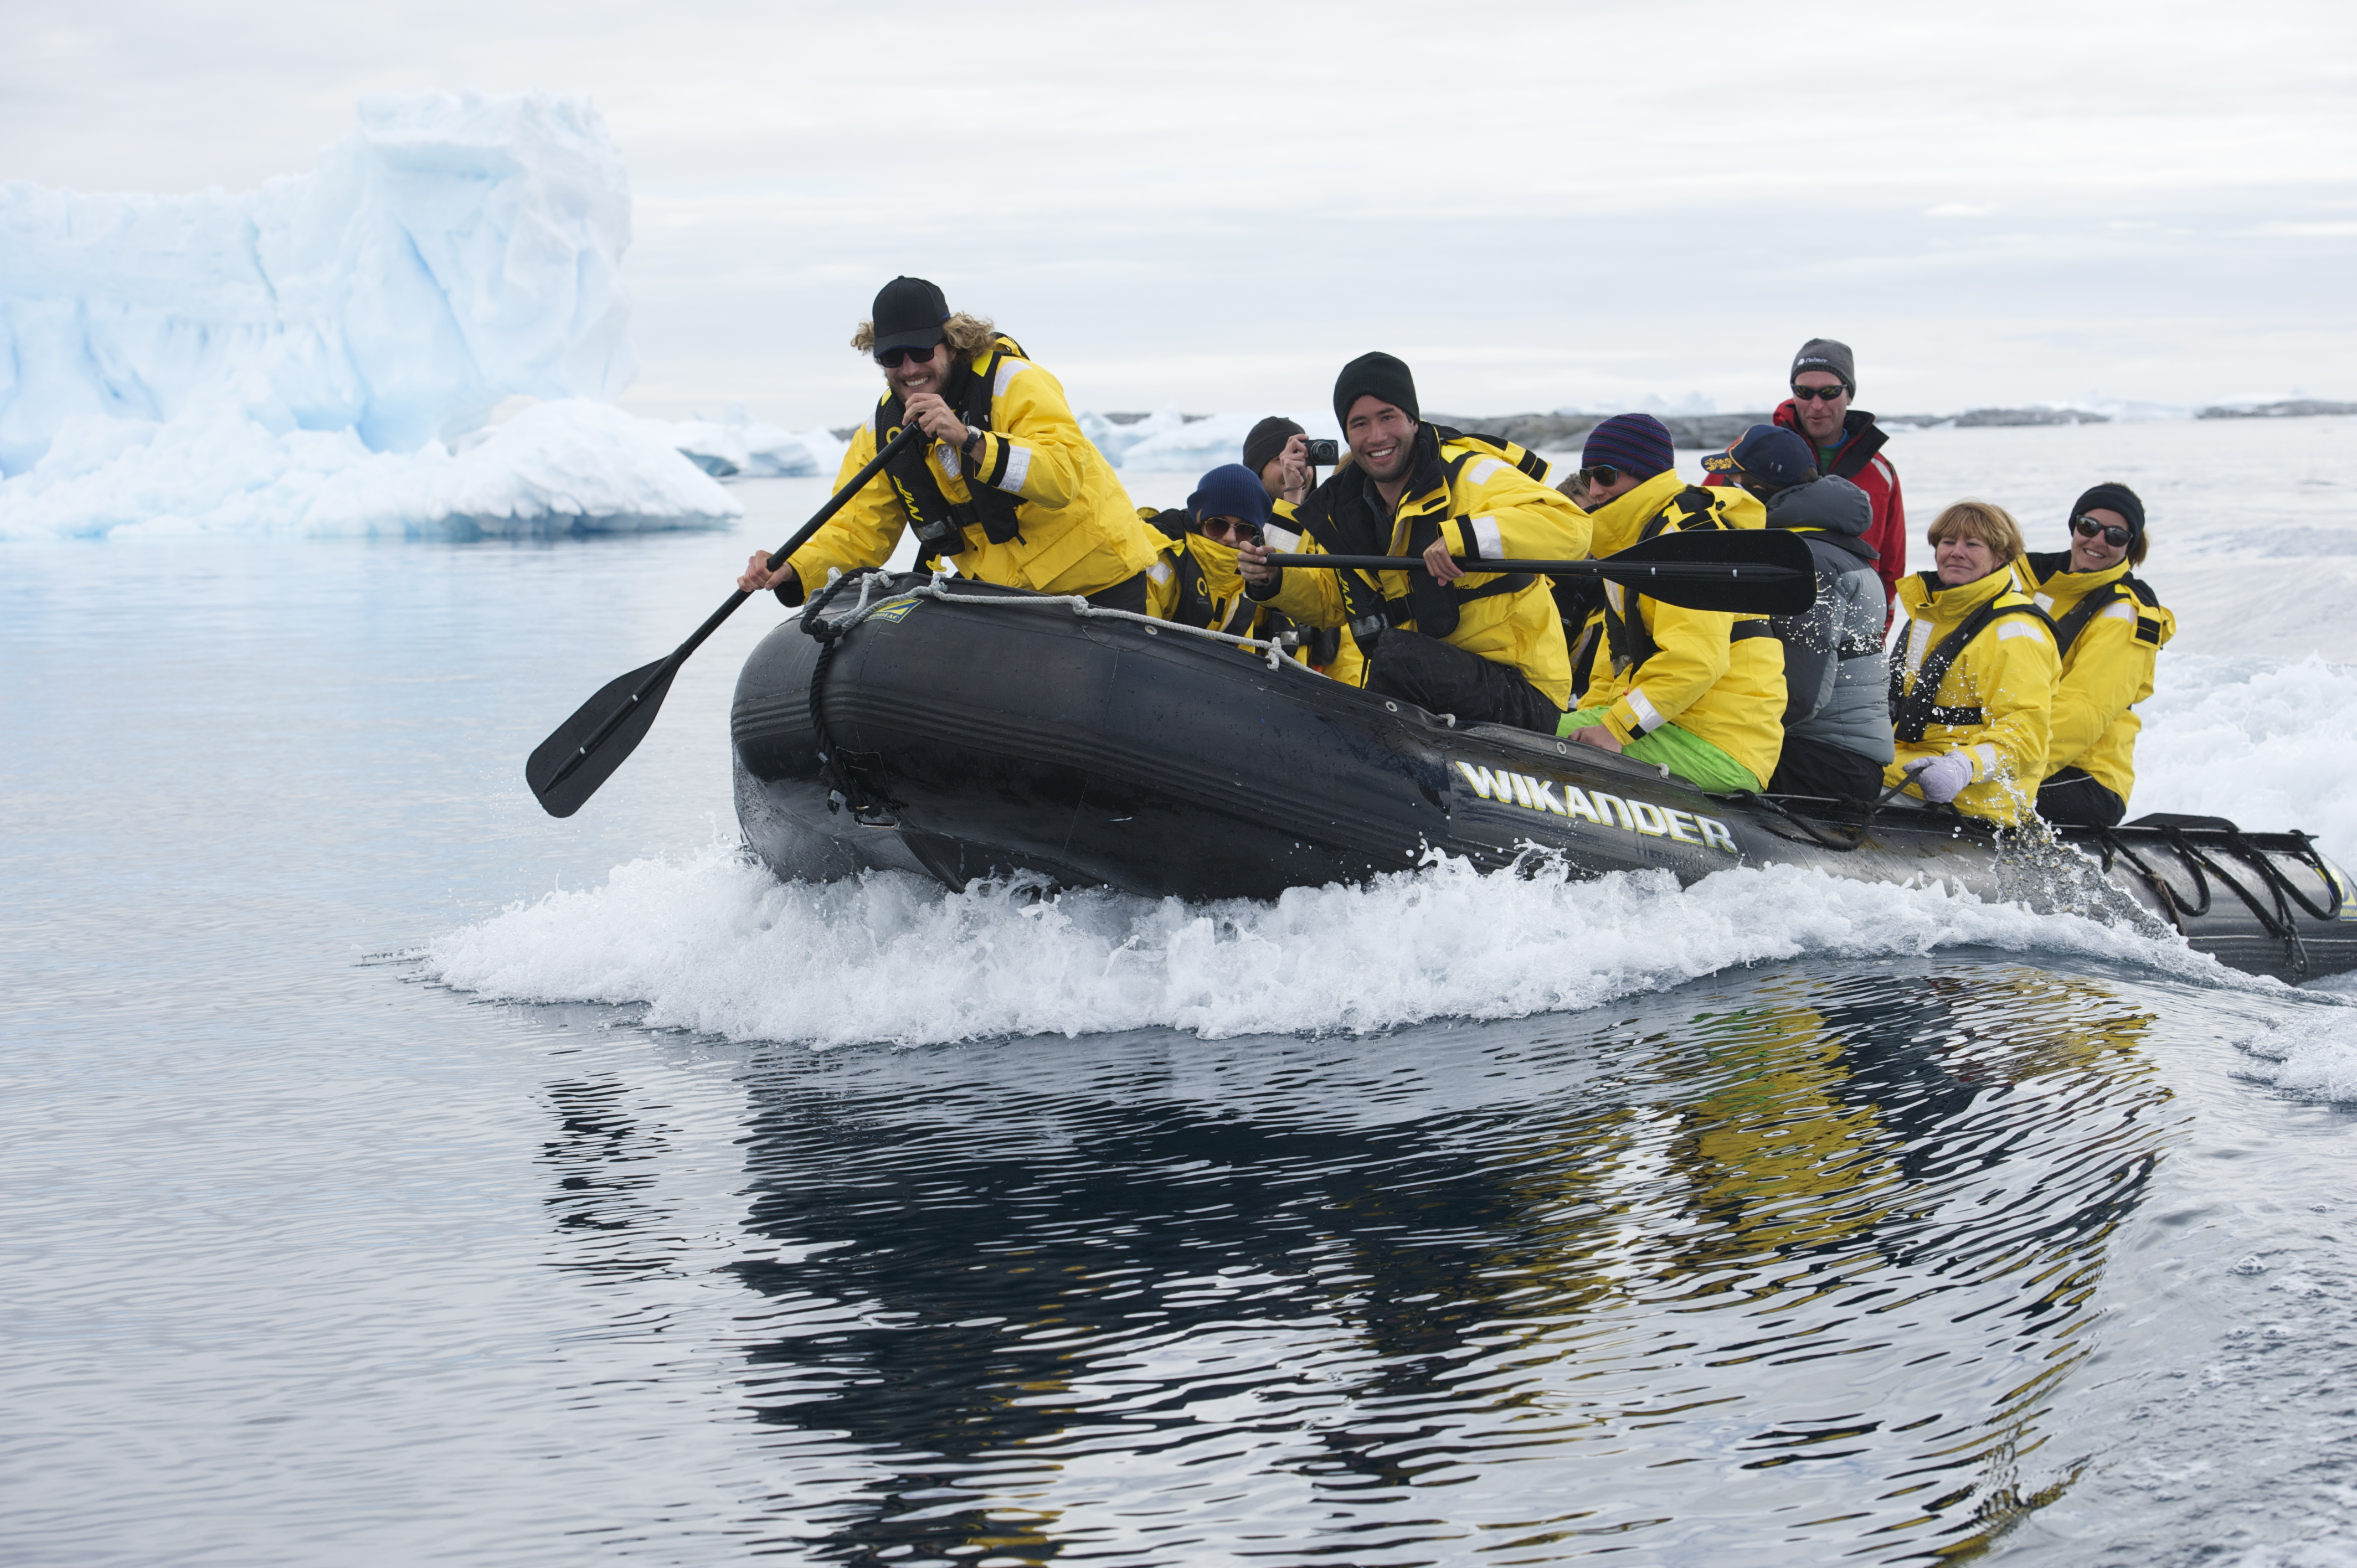 Here is an example of leaving a wake. This is also a preview of my next post. Antarctica!